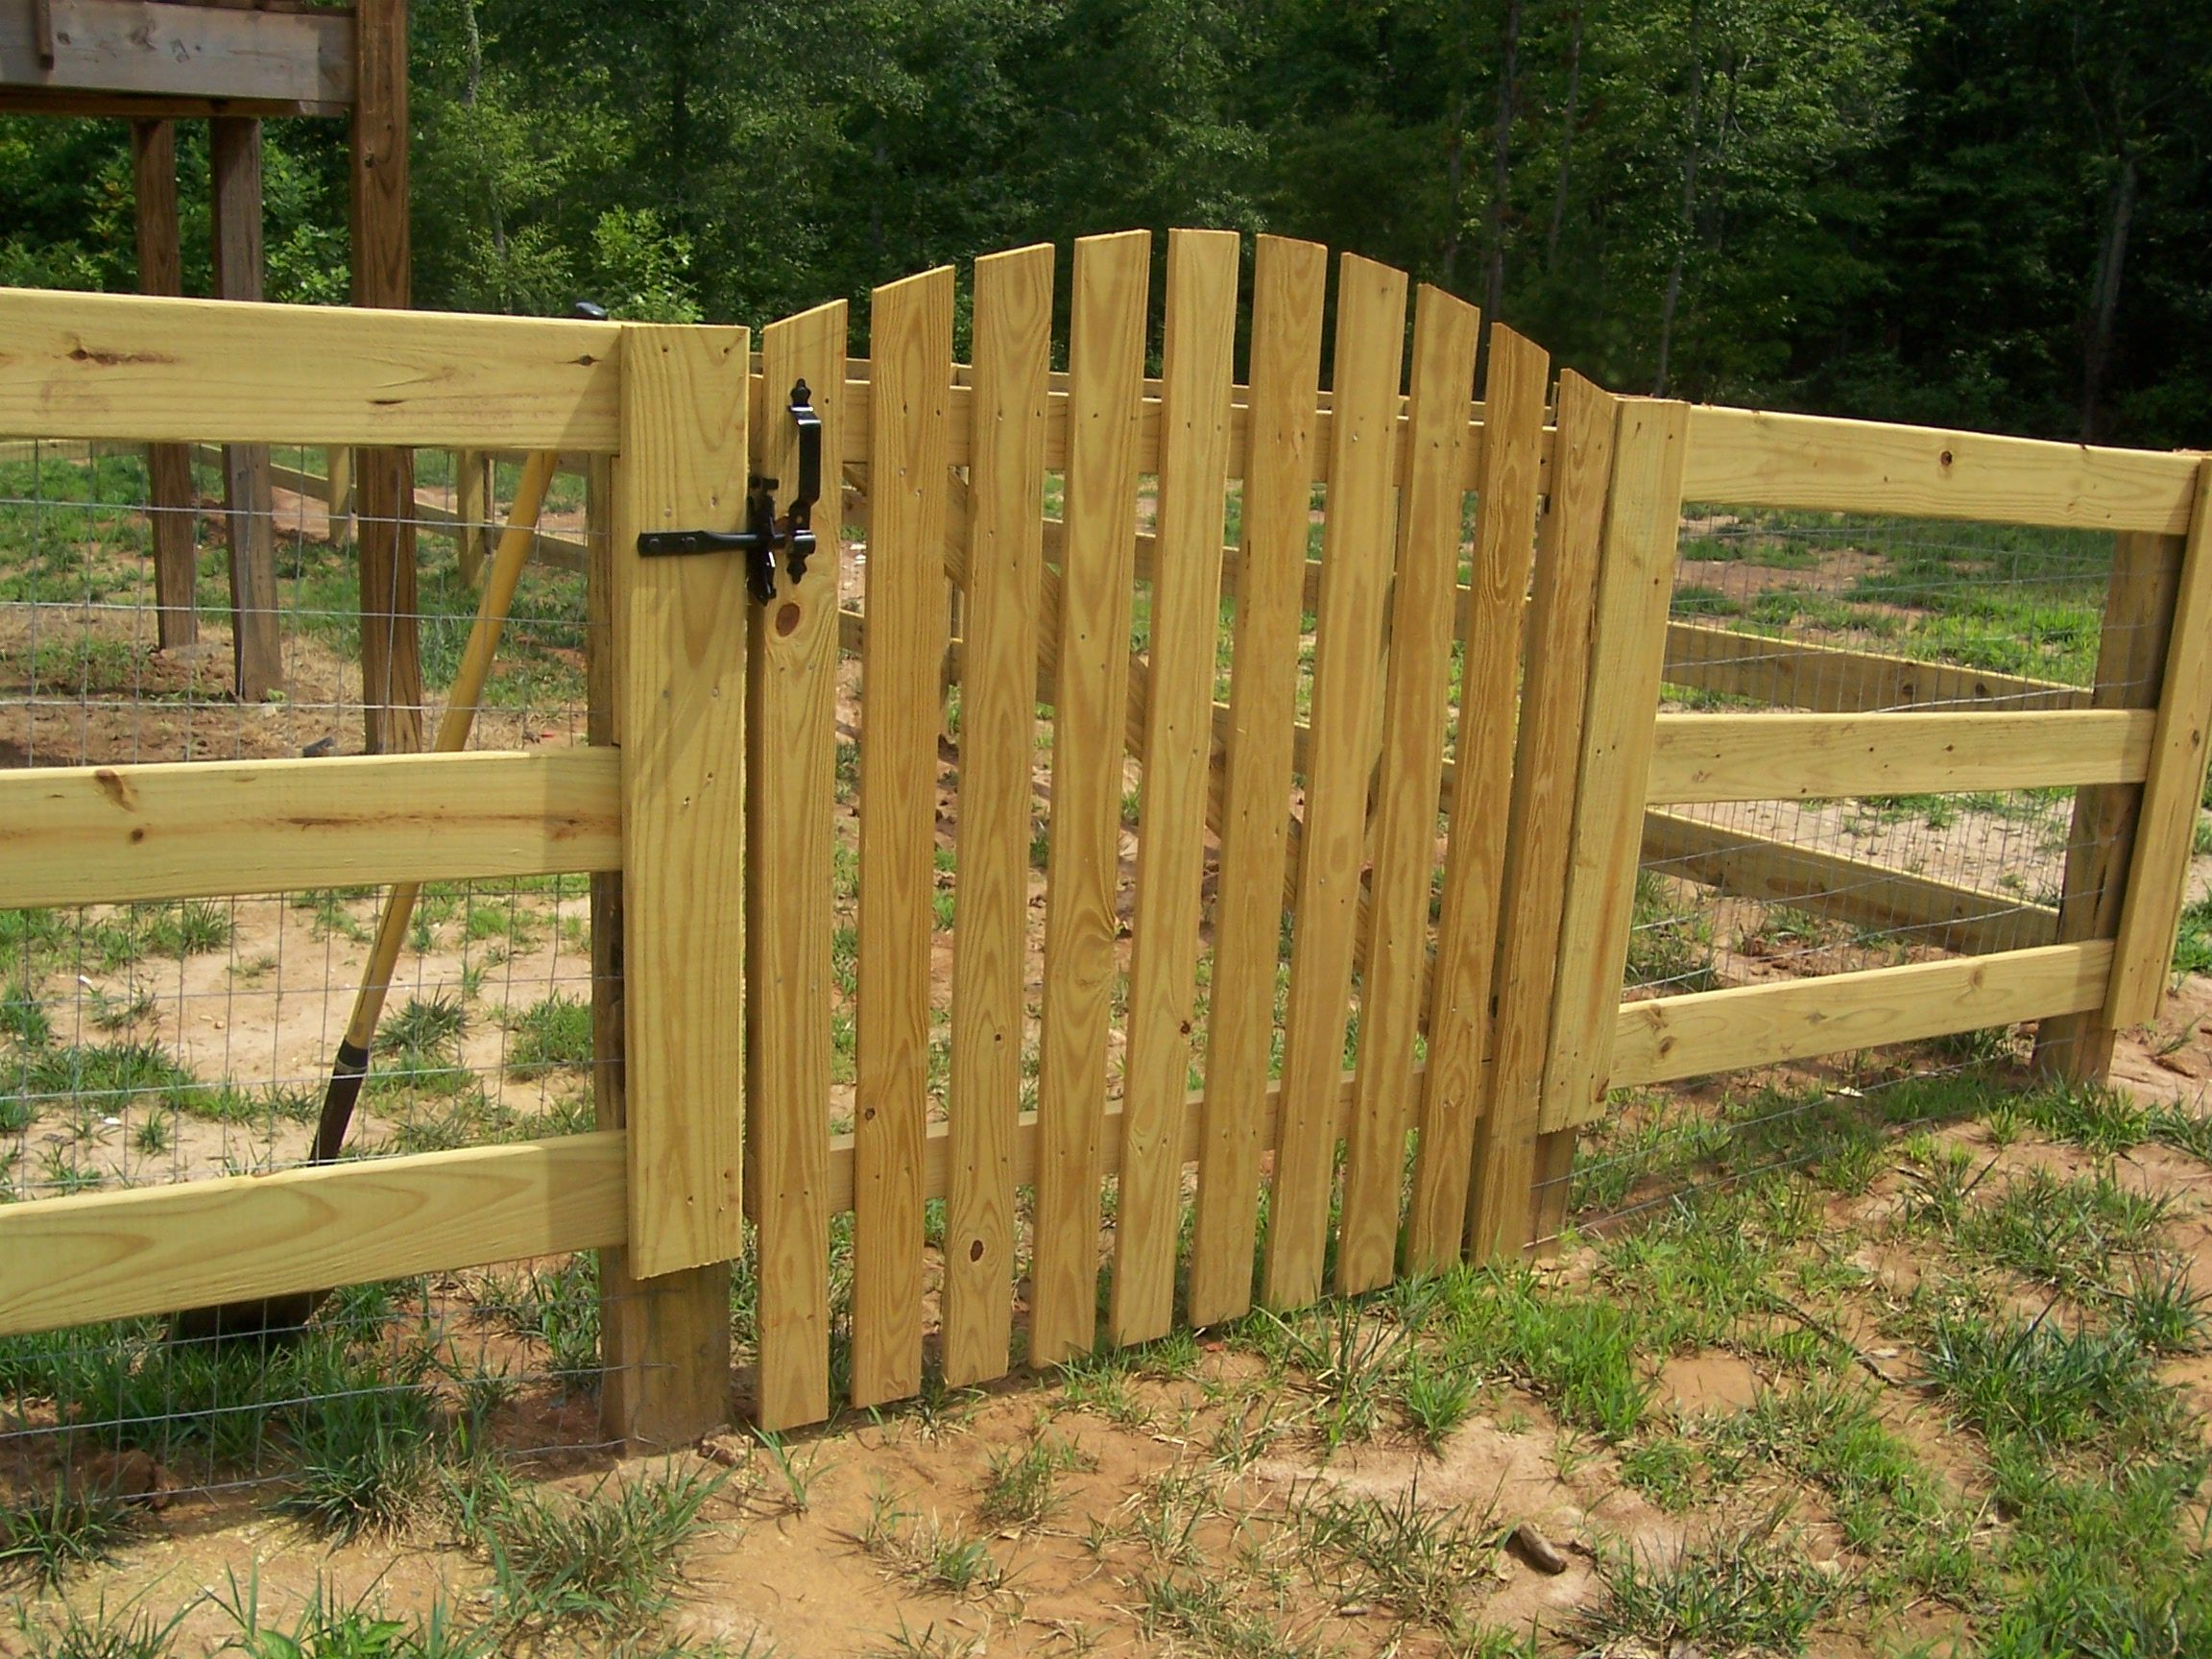 3 Rail Horse Board With Beautiful Wooden Picket Gate Horse Fence Gate Wood Fence Wood